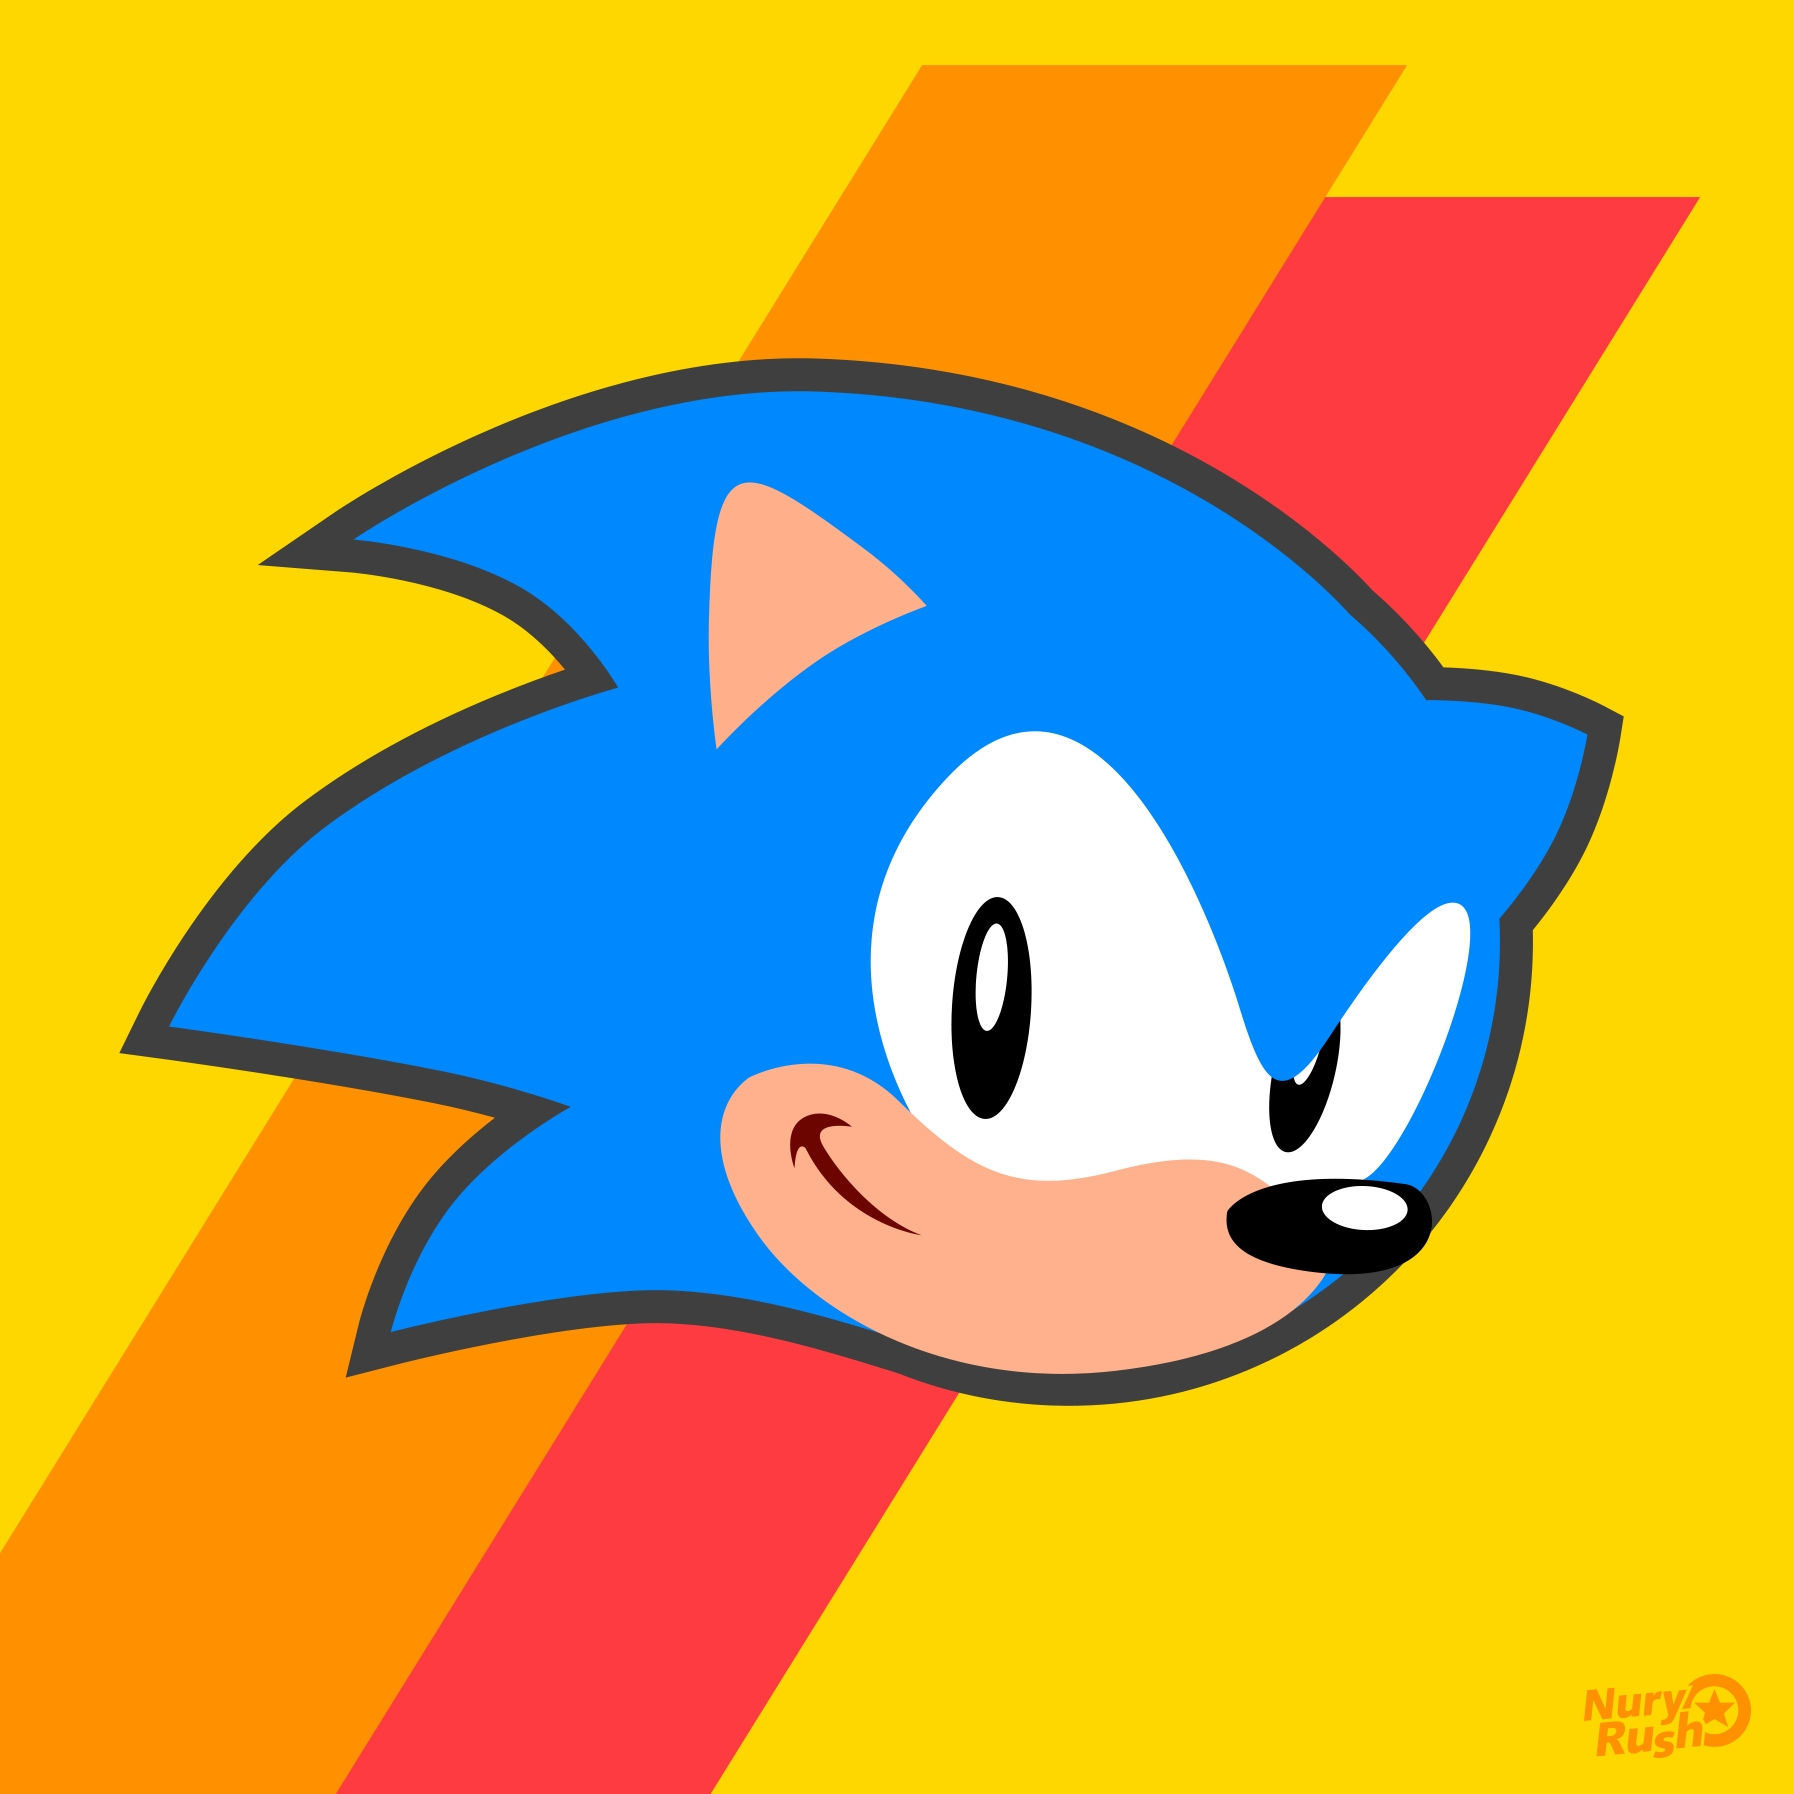 Title : Sonic Mania Wallpaper Hd | Icon Wallpaper Hd. Dimension : 1794 X  1794. File Type : JPG/JPEG